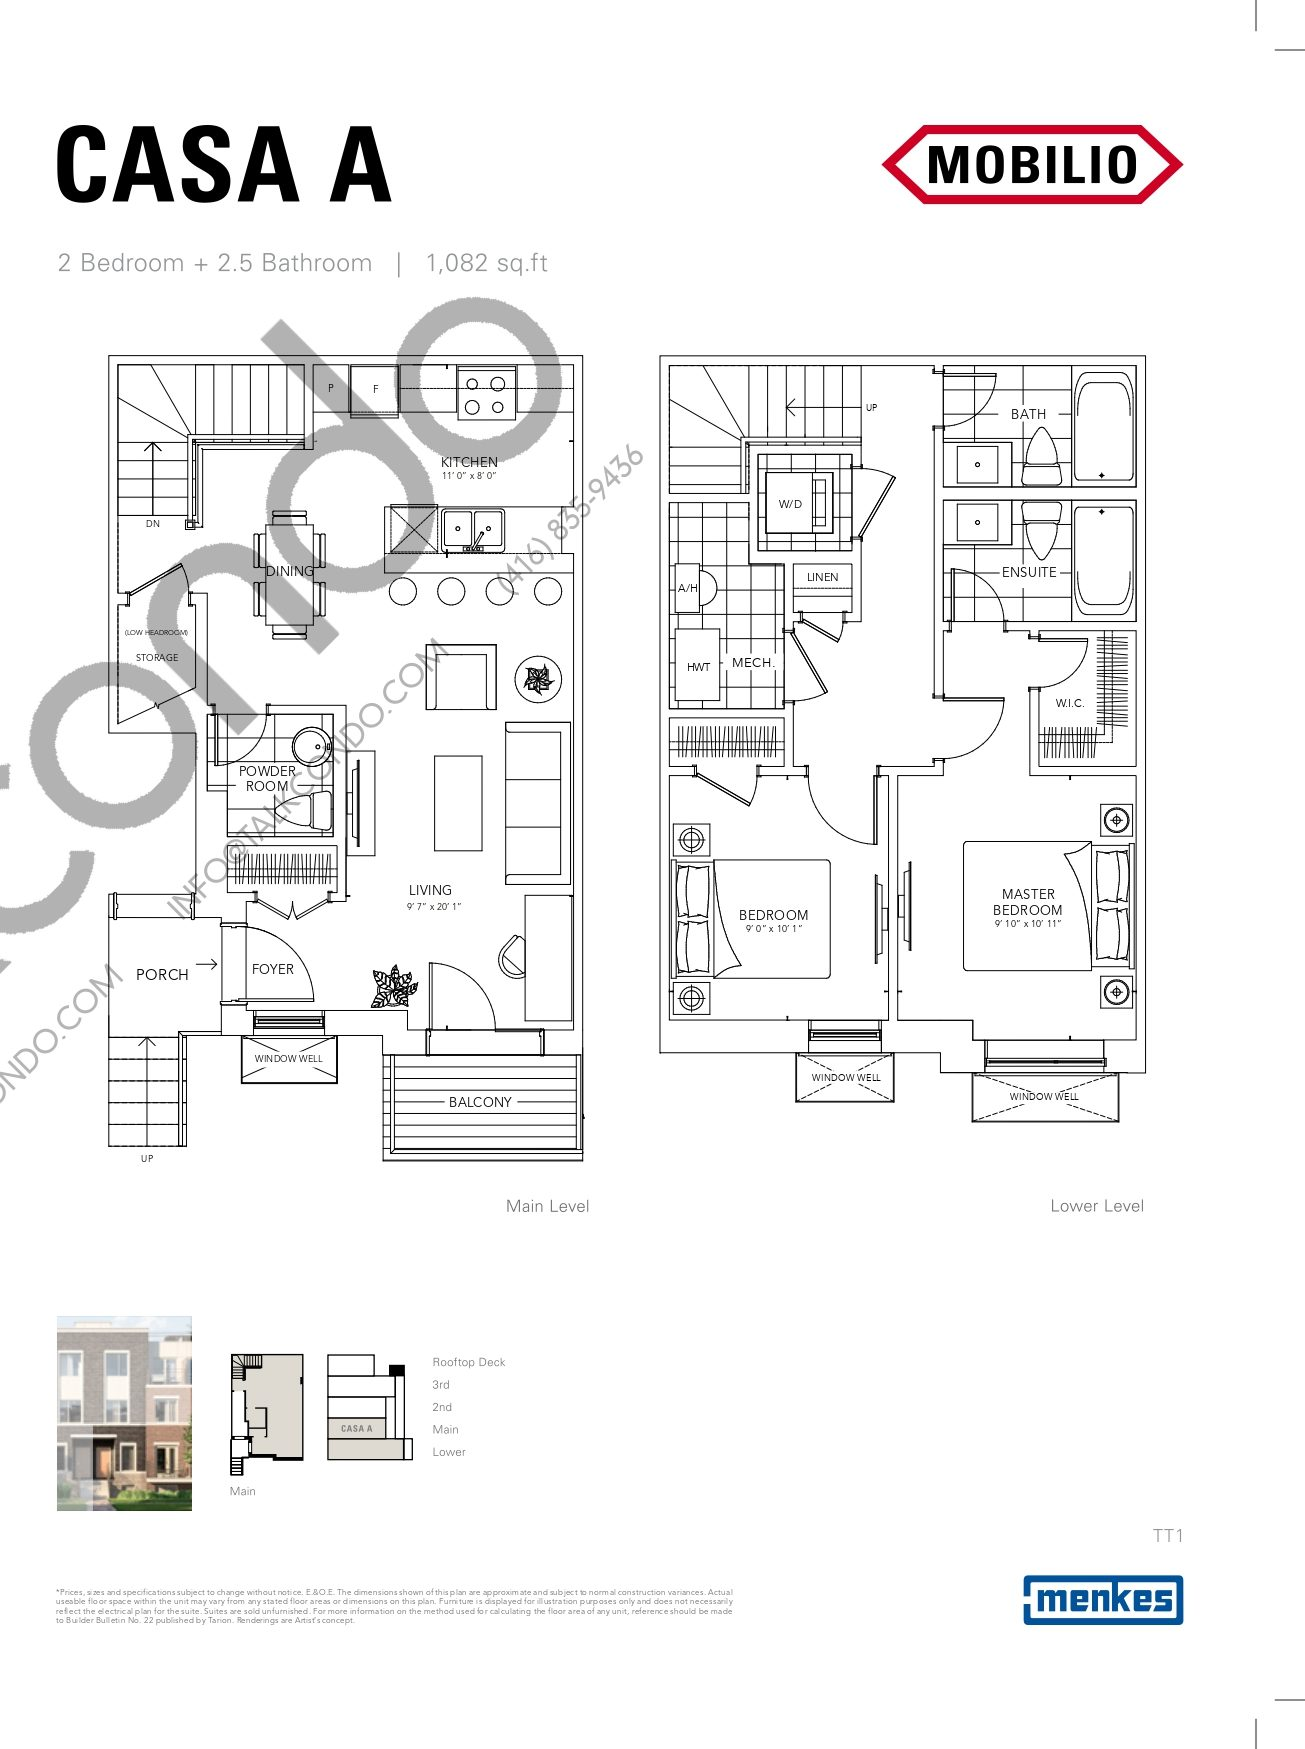 Casa A - Promenade Collection Floor Plan at Mobilio Townhomes - 1082 sq.ft